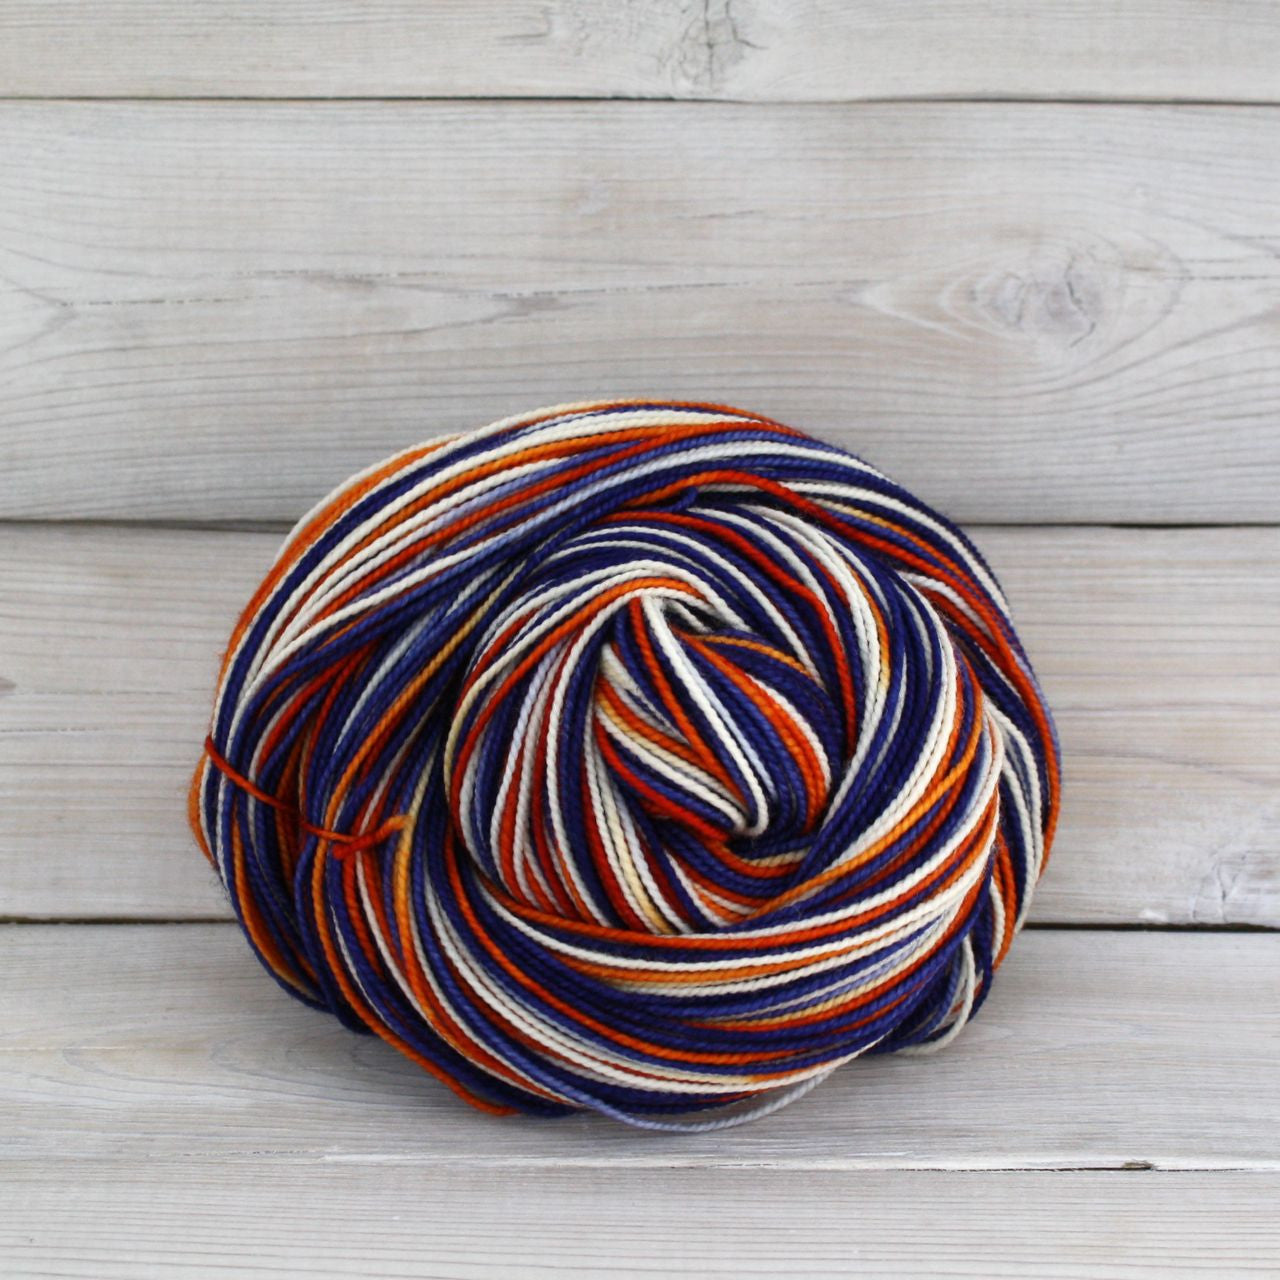 Luna Grey Fiber Arts Celeste Yarn | Colorway: Broncos